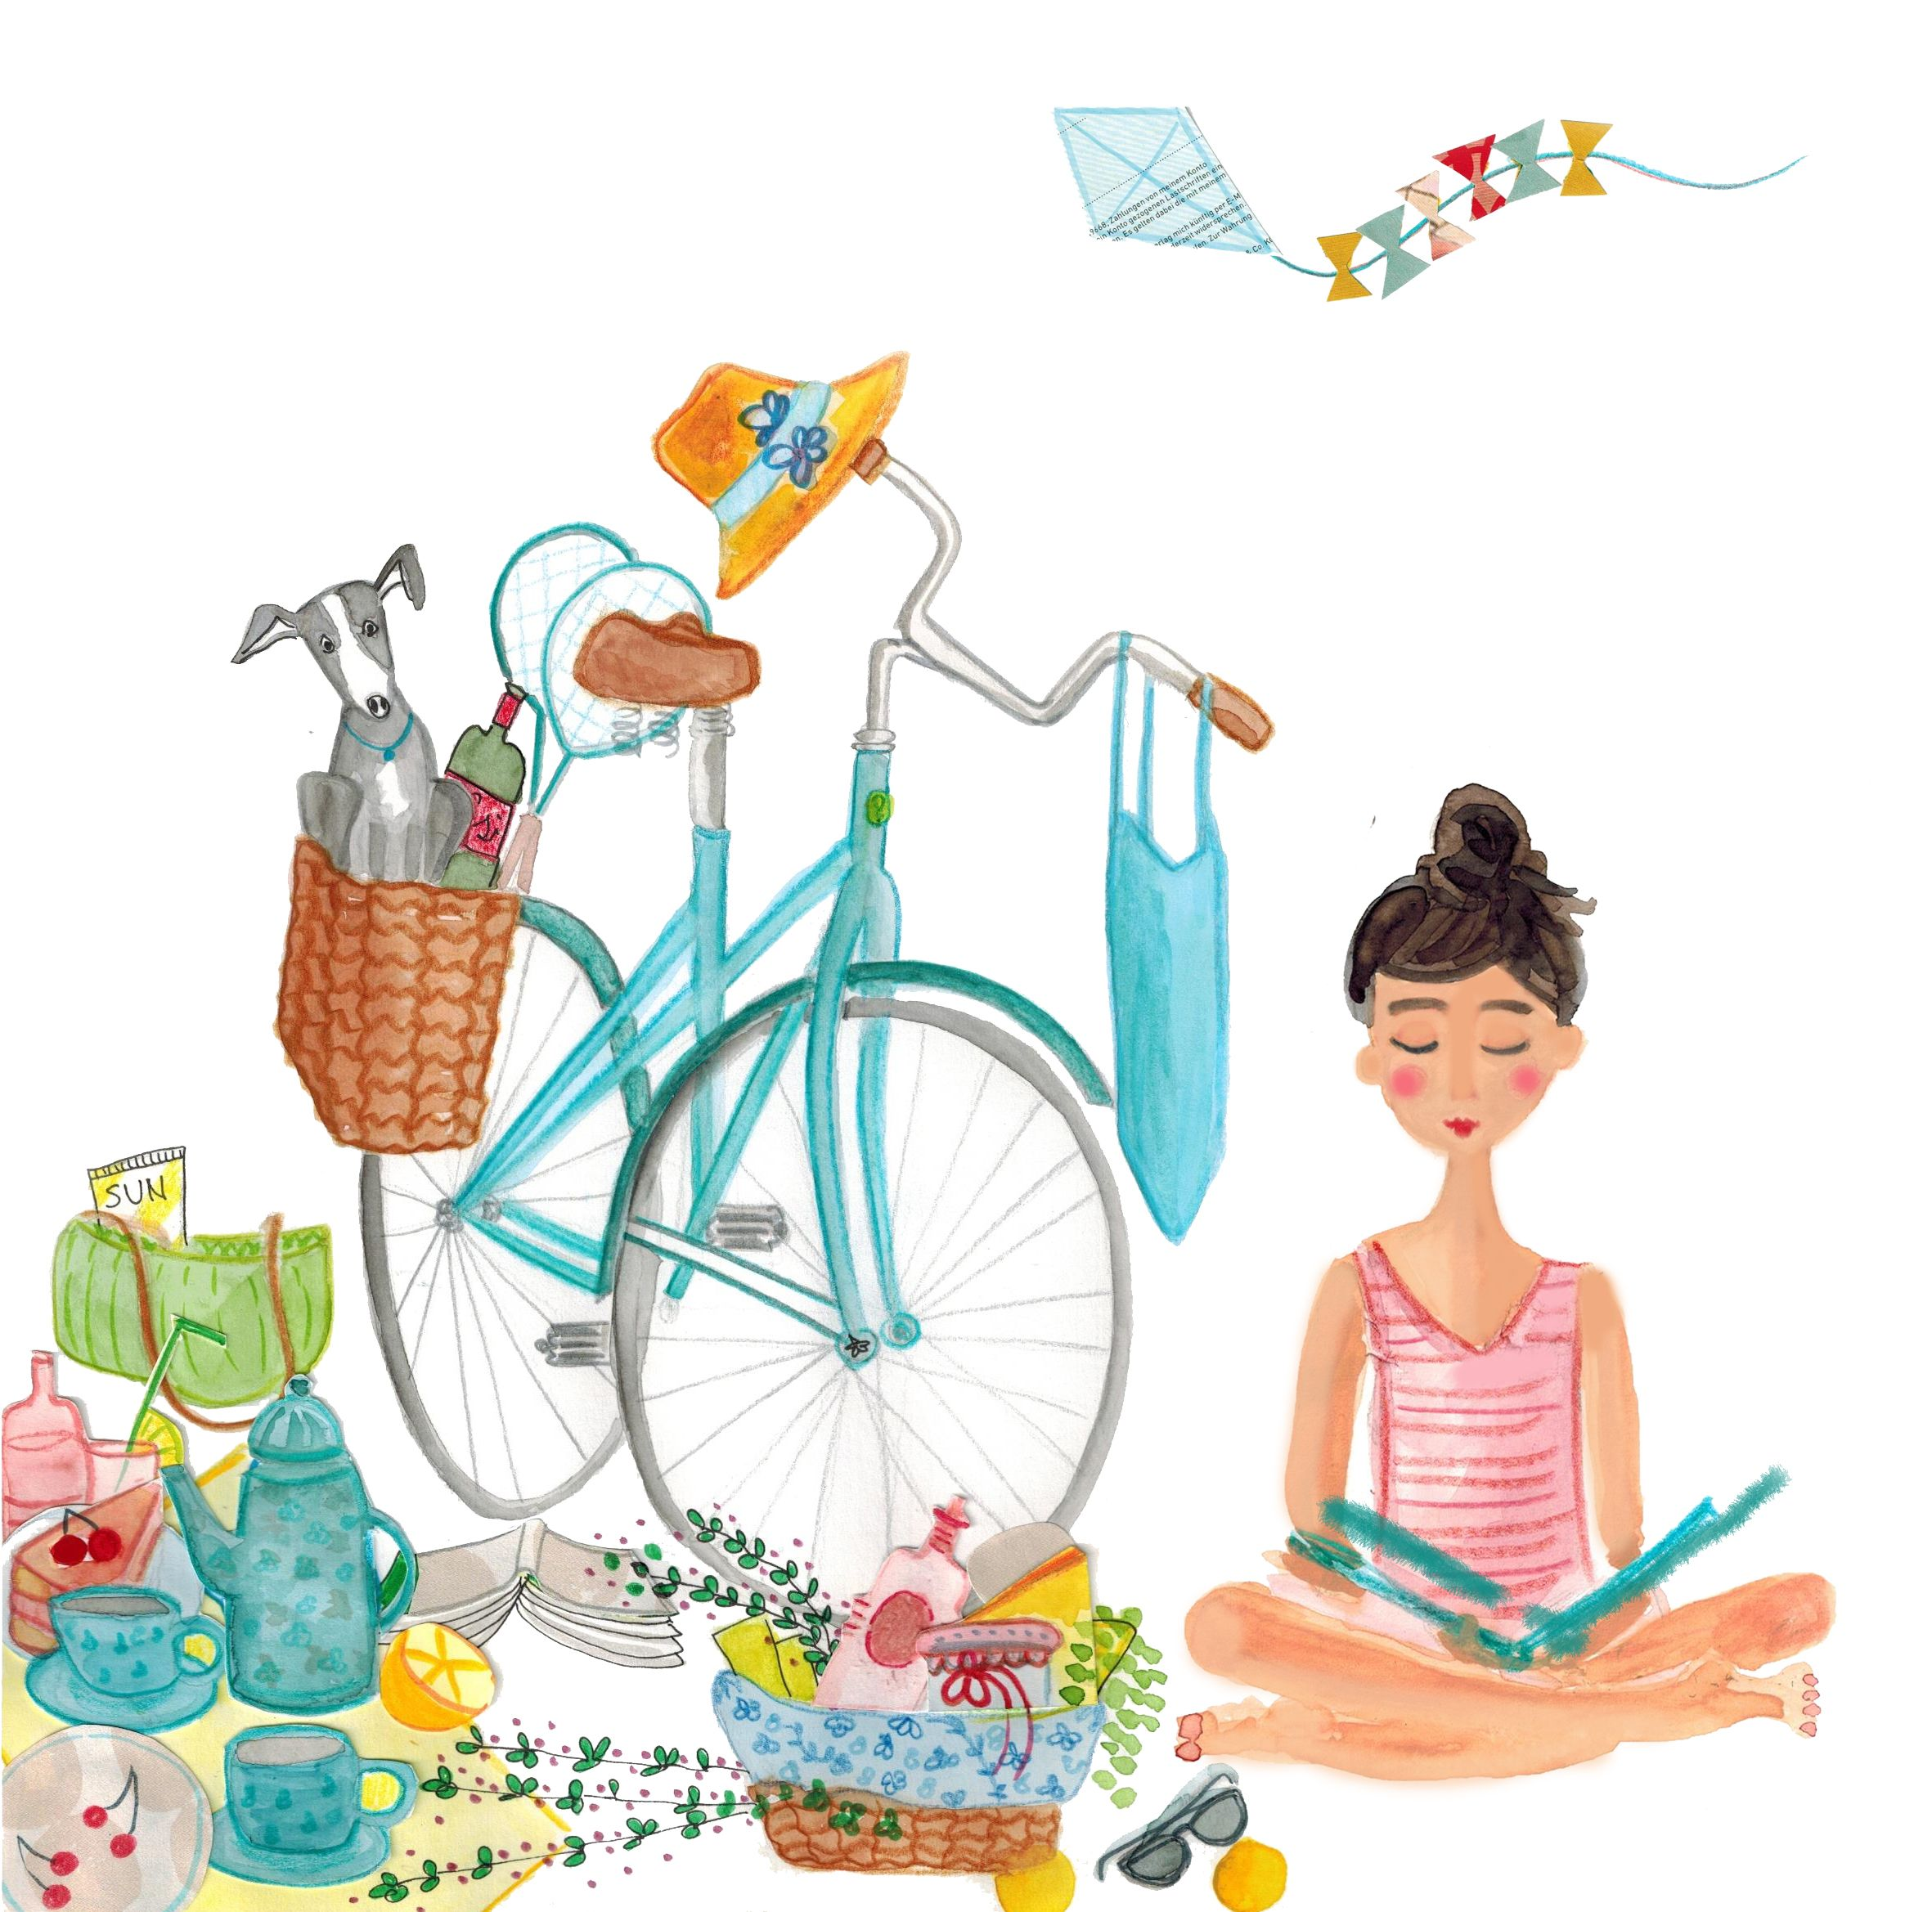 Illustration C Inka Hagen Die Gute Wal Productions Buchtage Picknick Am See Picknick At The Sea Bike Bicycle Woman Reading Reading Books Adventure D In 2020 See